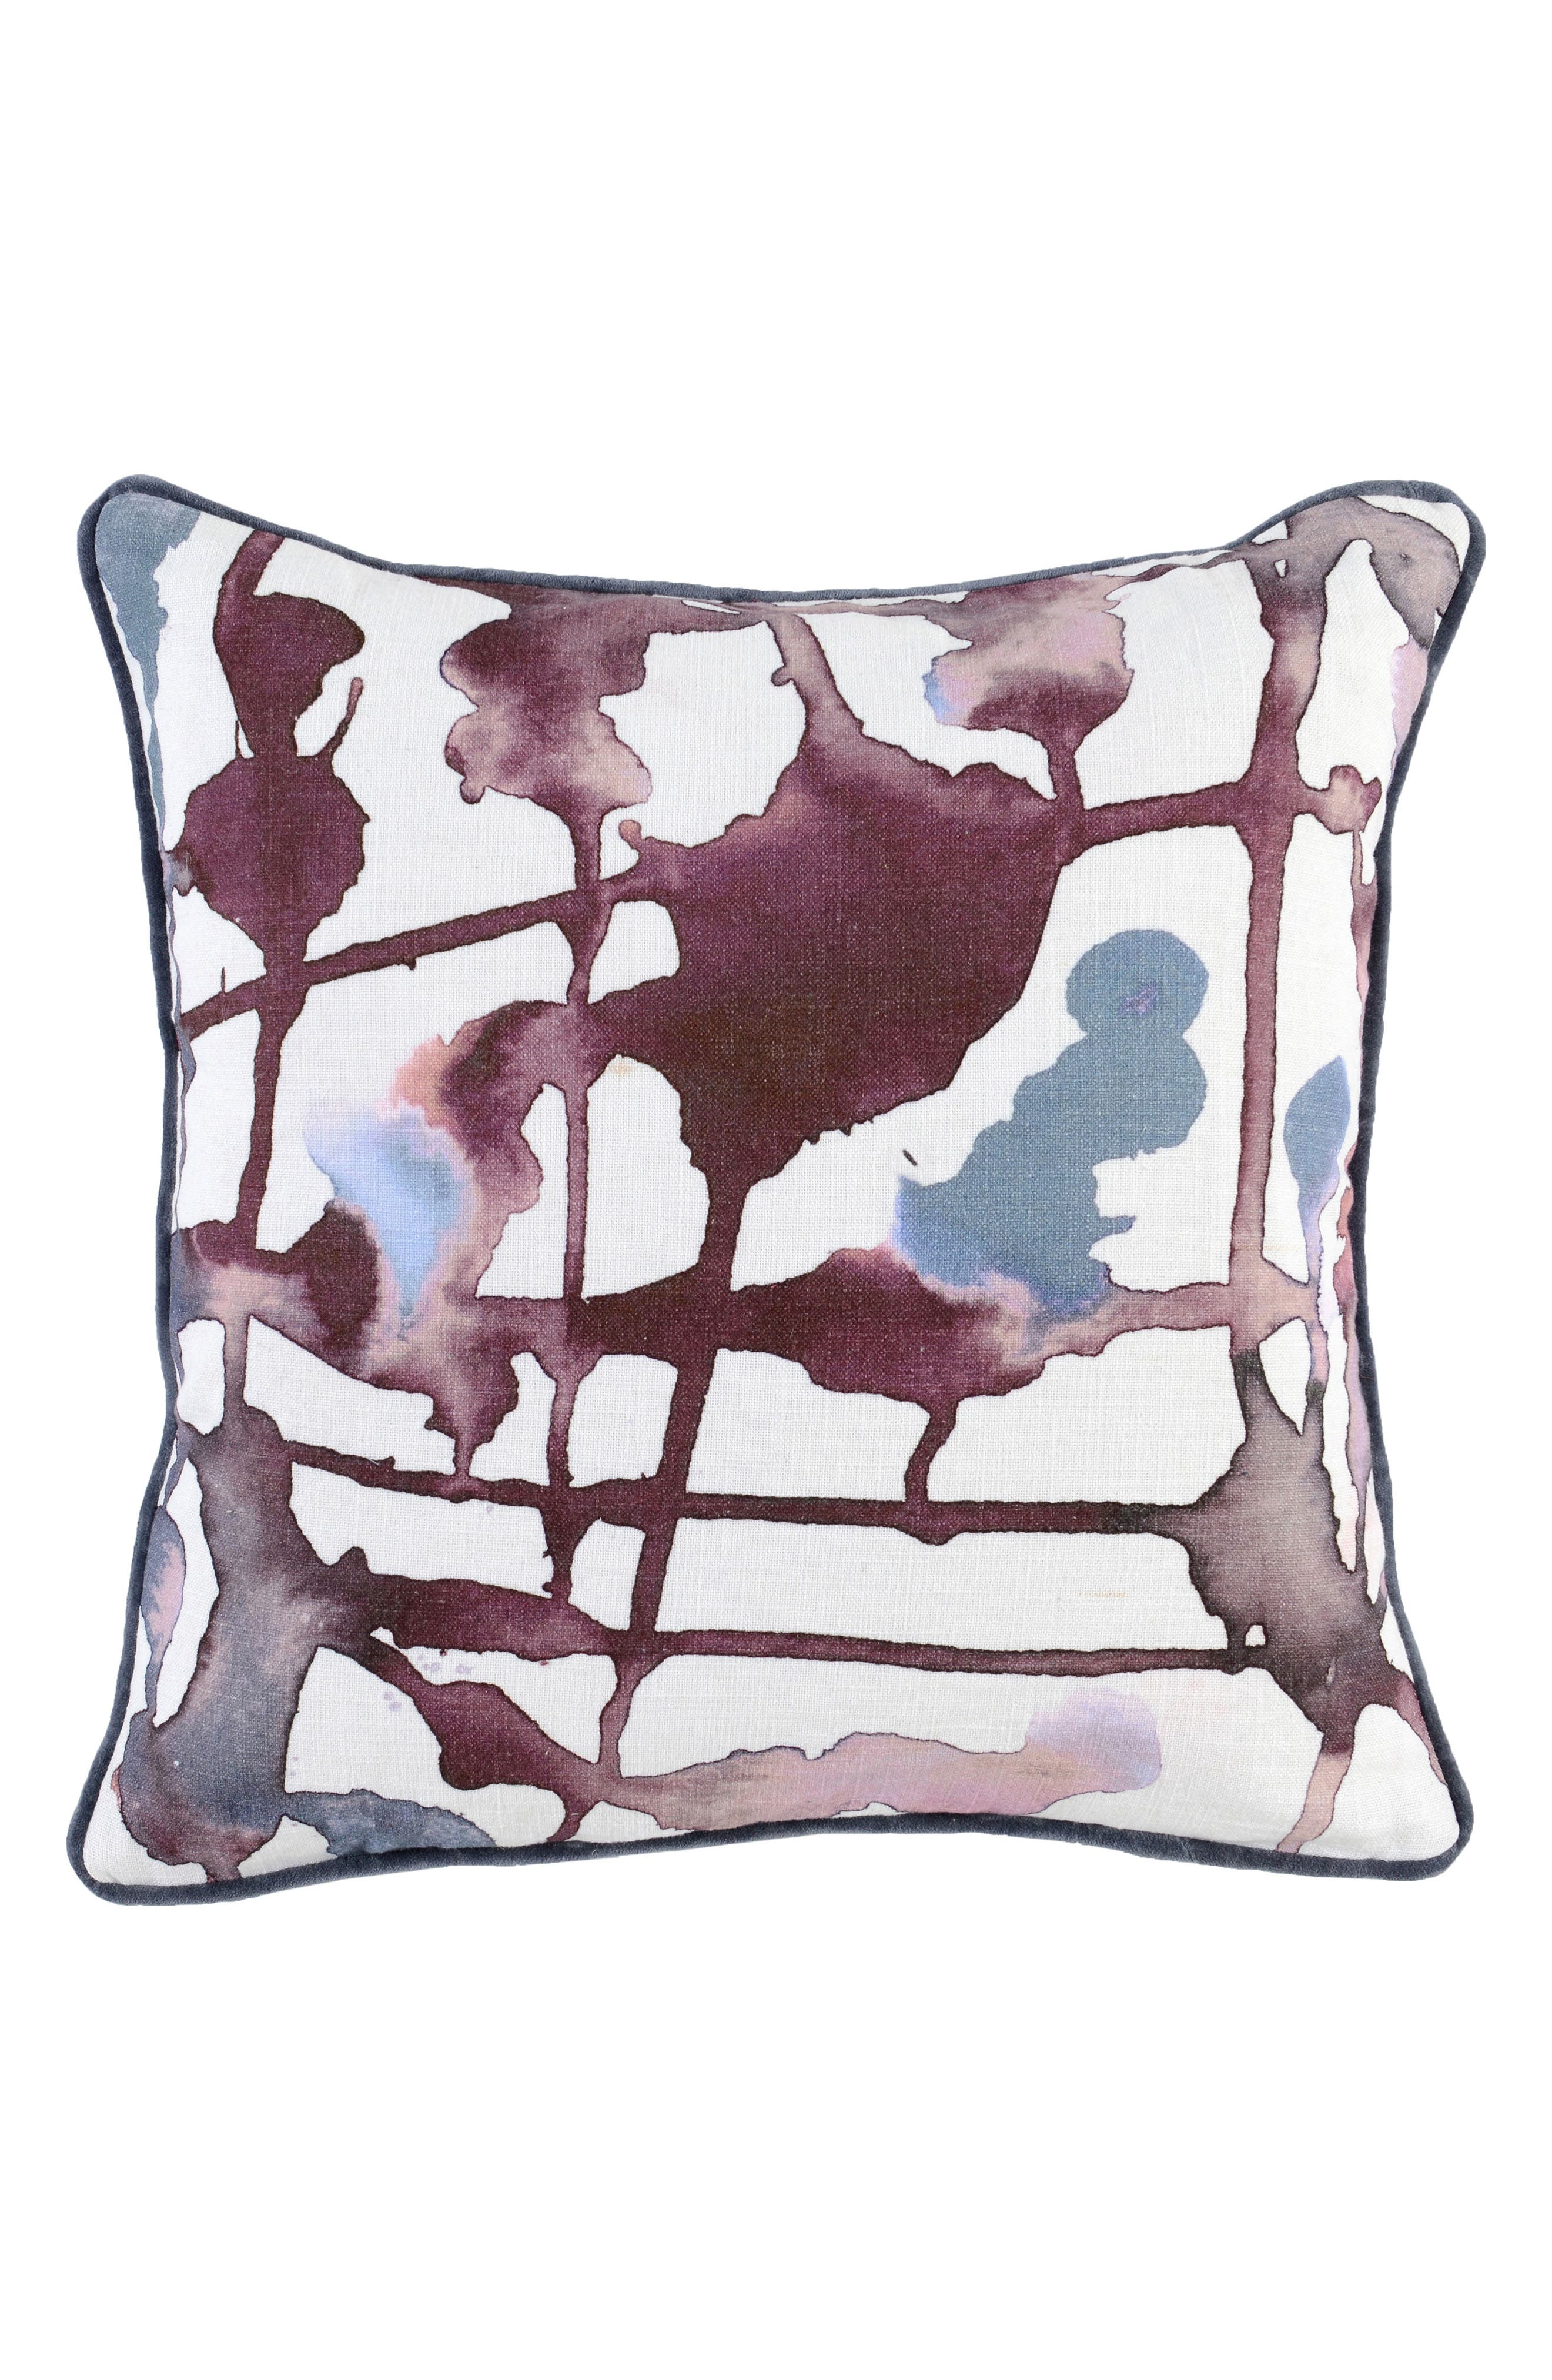 Lillian Accent Pillow,                             Main thumbnail 1, color,                             WINE/ GRAY